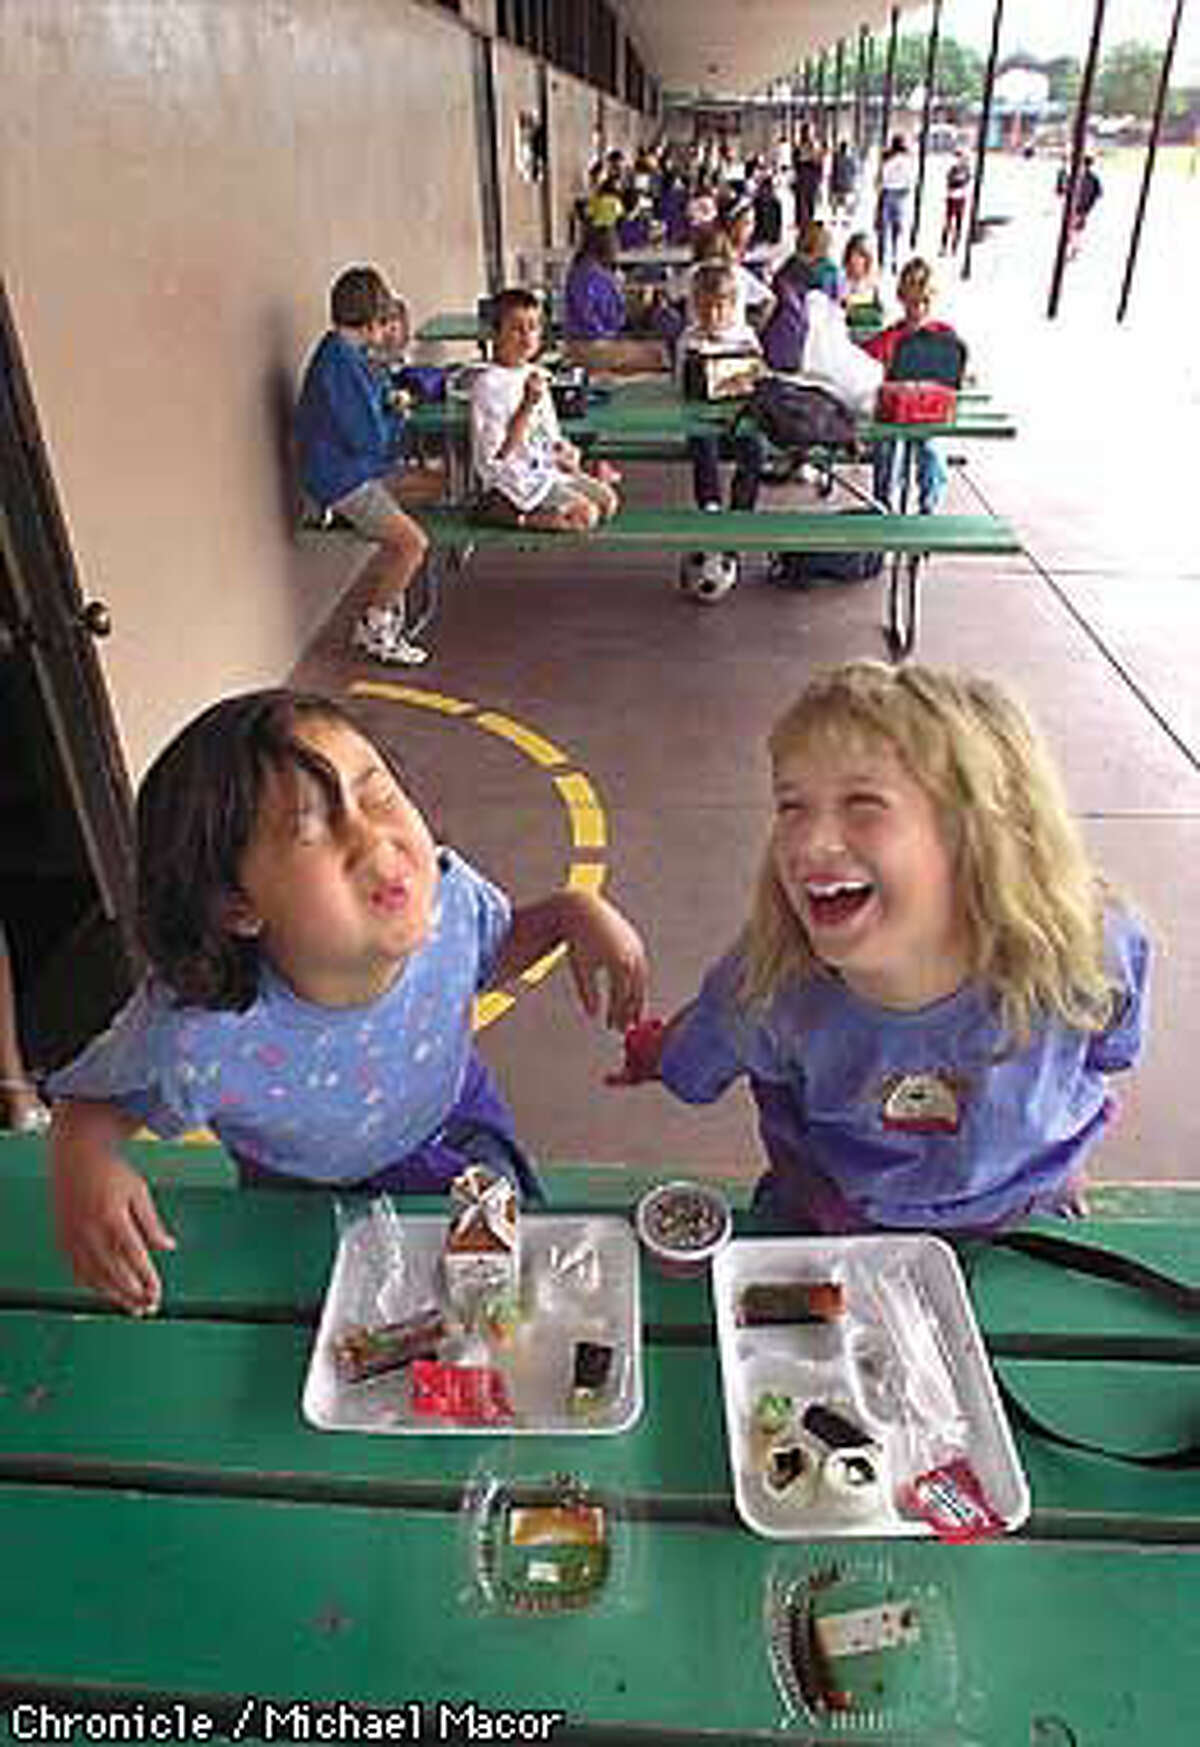 Alicia Michelson (left) and Cally Berg, third-graders at Ohlone Elementary School in Palo Alto, enjoyed their California rolls at lunch. Chronicle Photo by Michael Macor